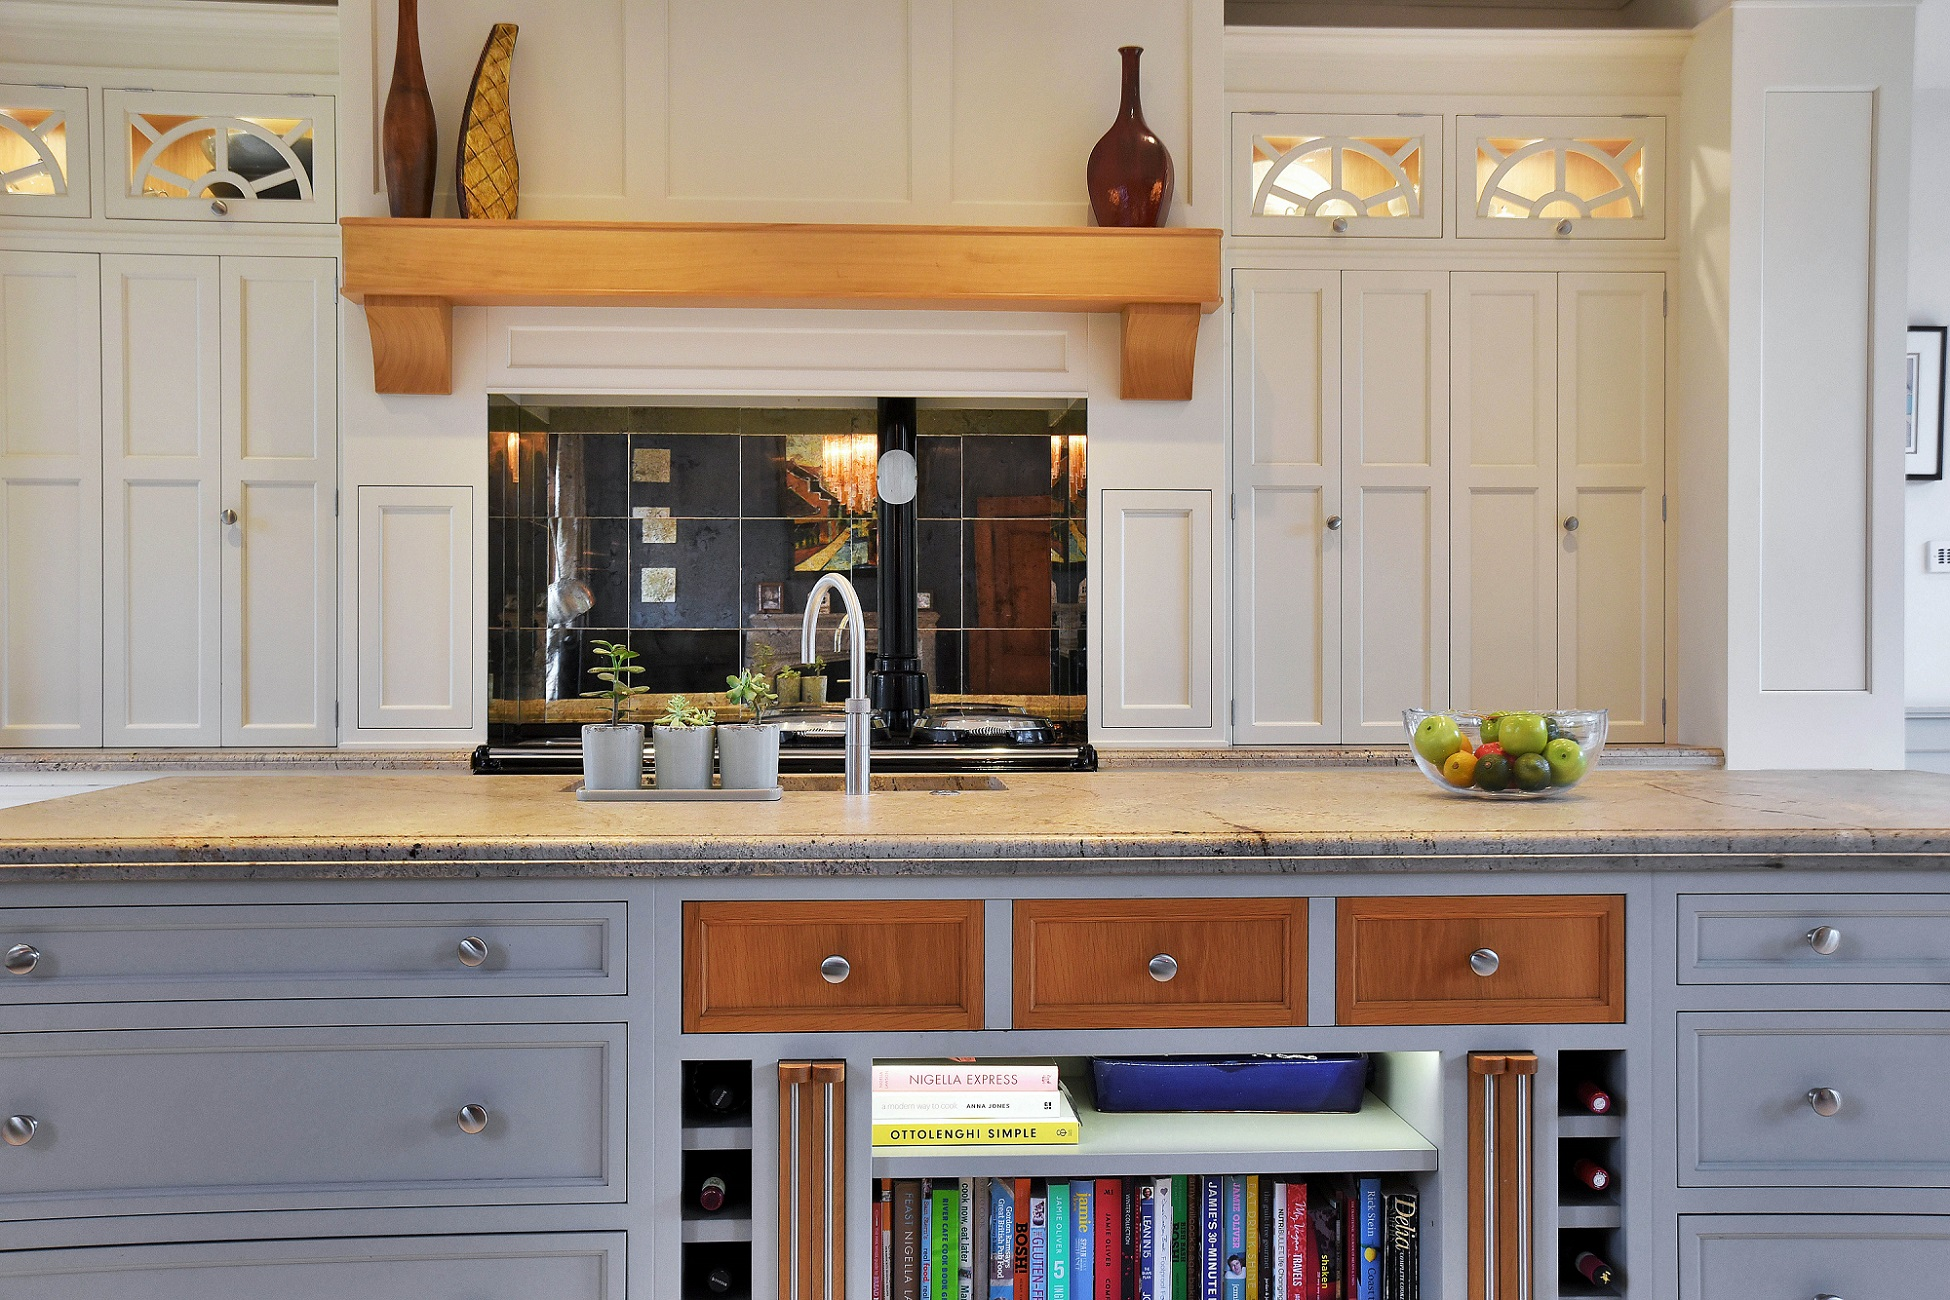 SECURING A SALE WITHIN TWO WEEKS: HOW HOME STAGING CAN SELL YOUR PROPERTY